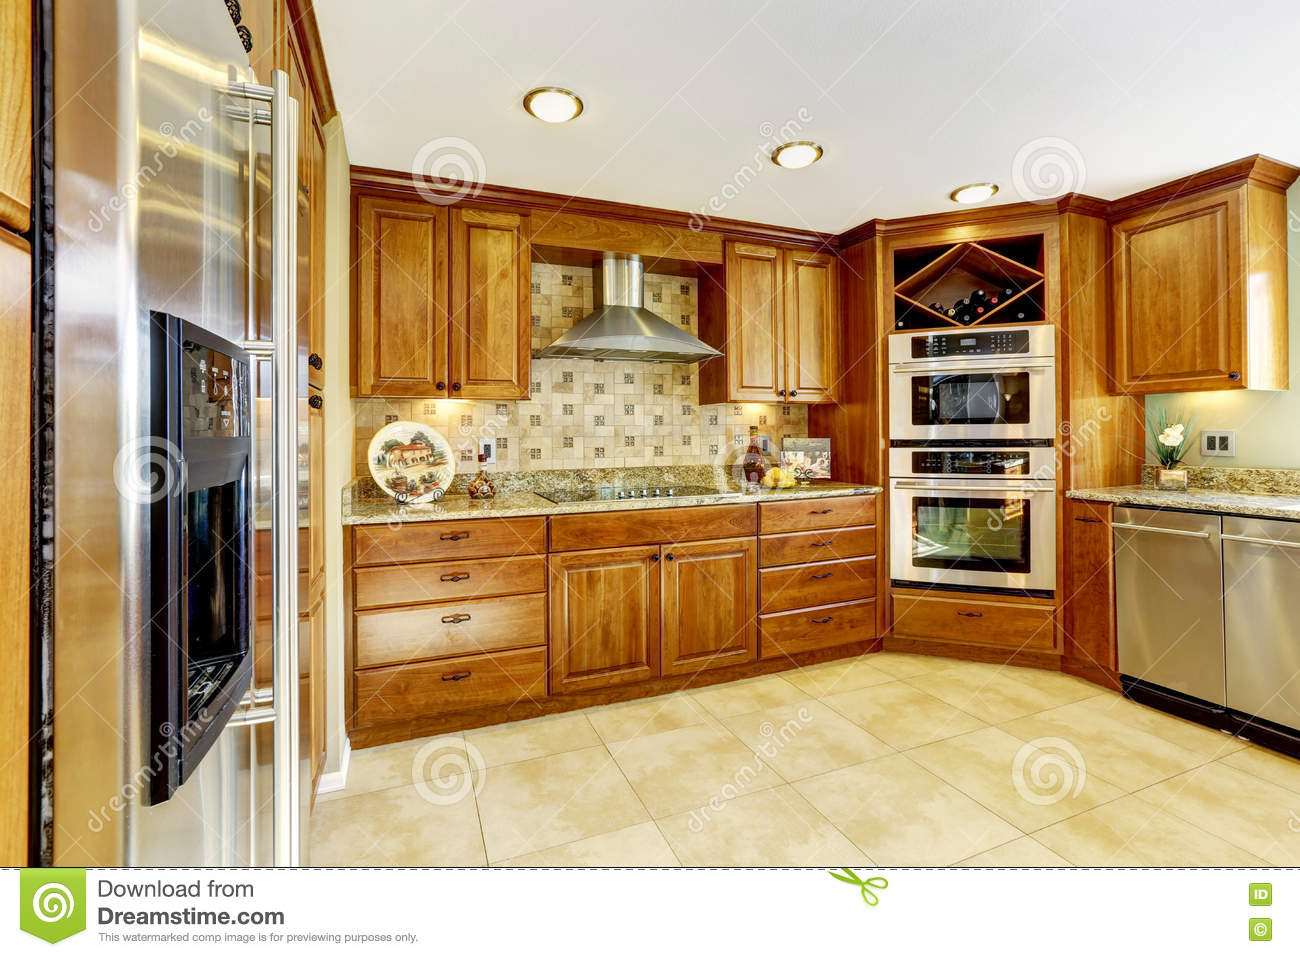 luxury kitchen with tile floor and stained cabinets stock photo image of large shiny 73894590